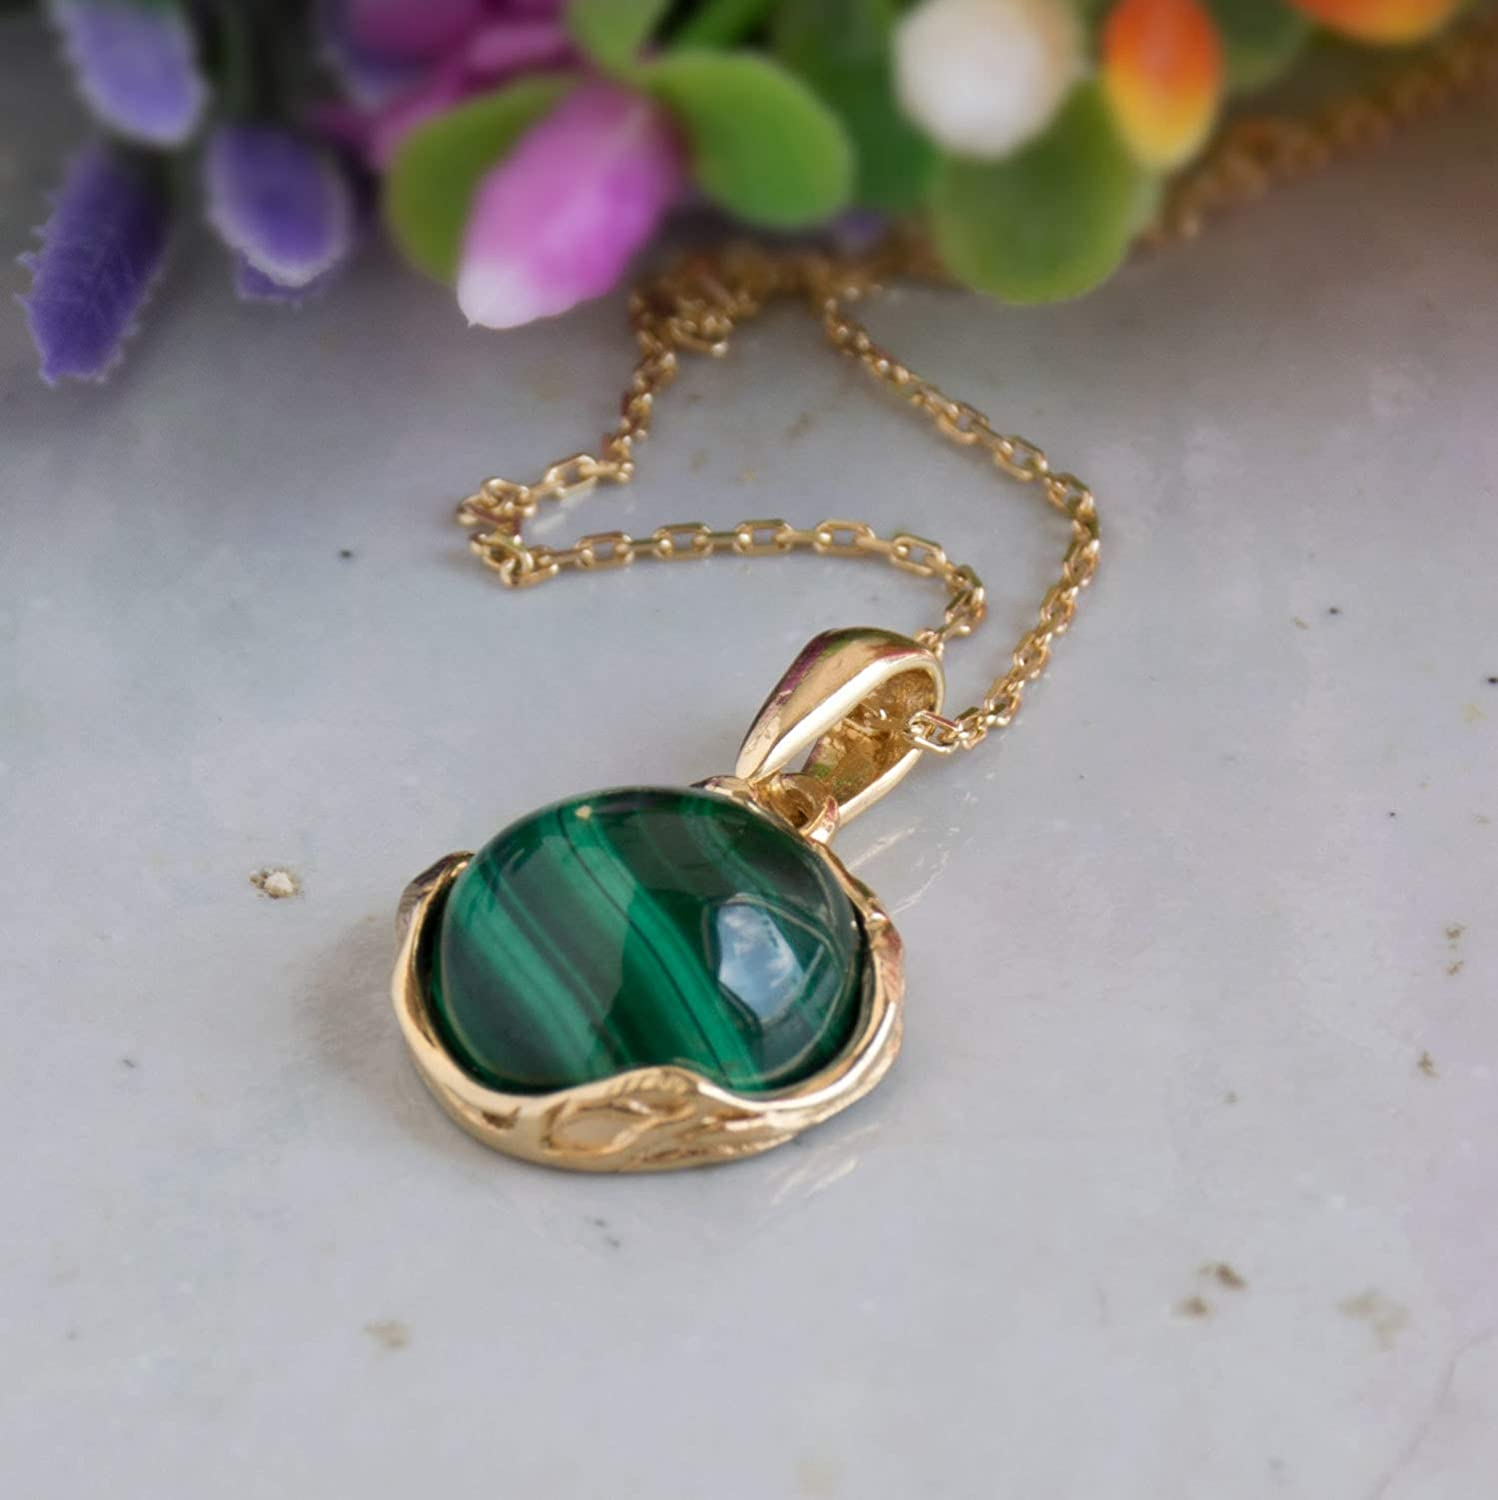 Sterling Silver or 10k gold Tall Rococo Beaded Necklace with Green Apatite  Handmade Minimalist Pendant Necklace in Brass